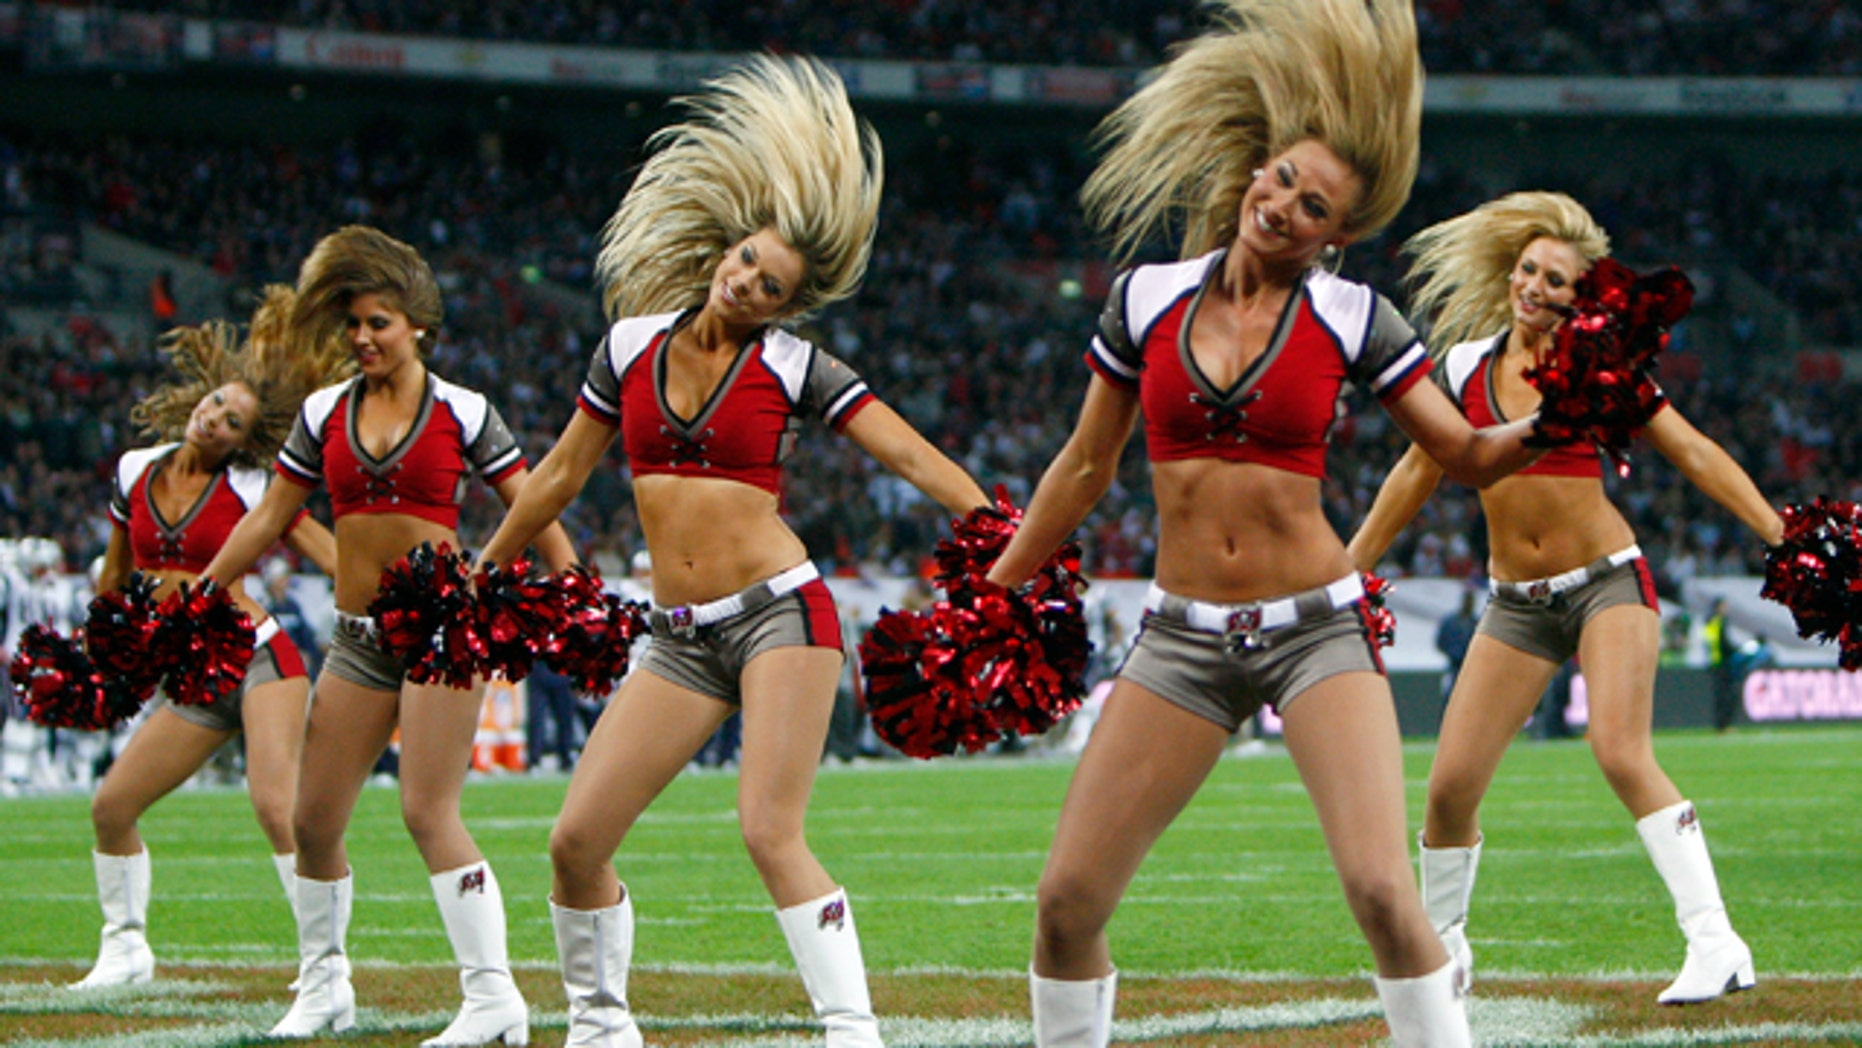 The Tampa Bay Buccaneers cheerleaders. (Reuters)